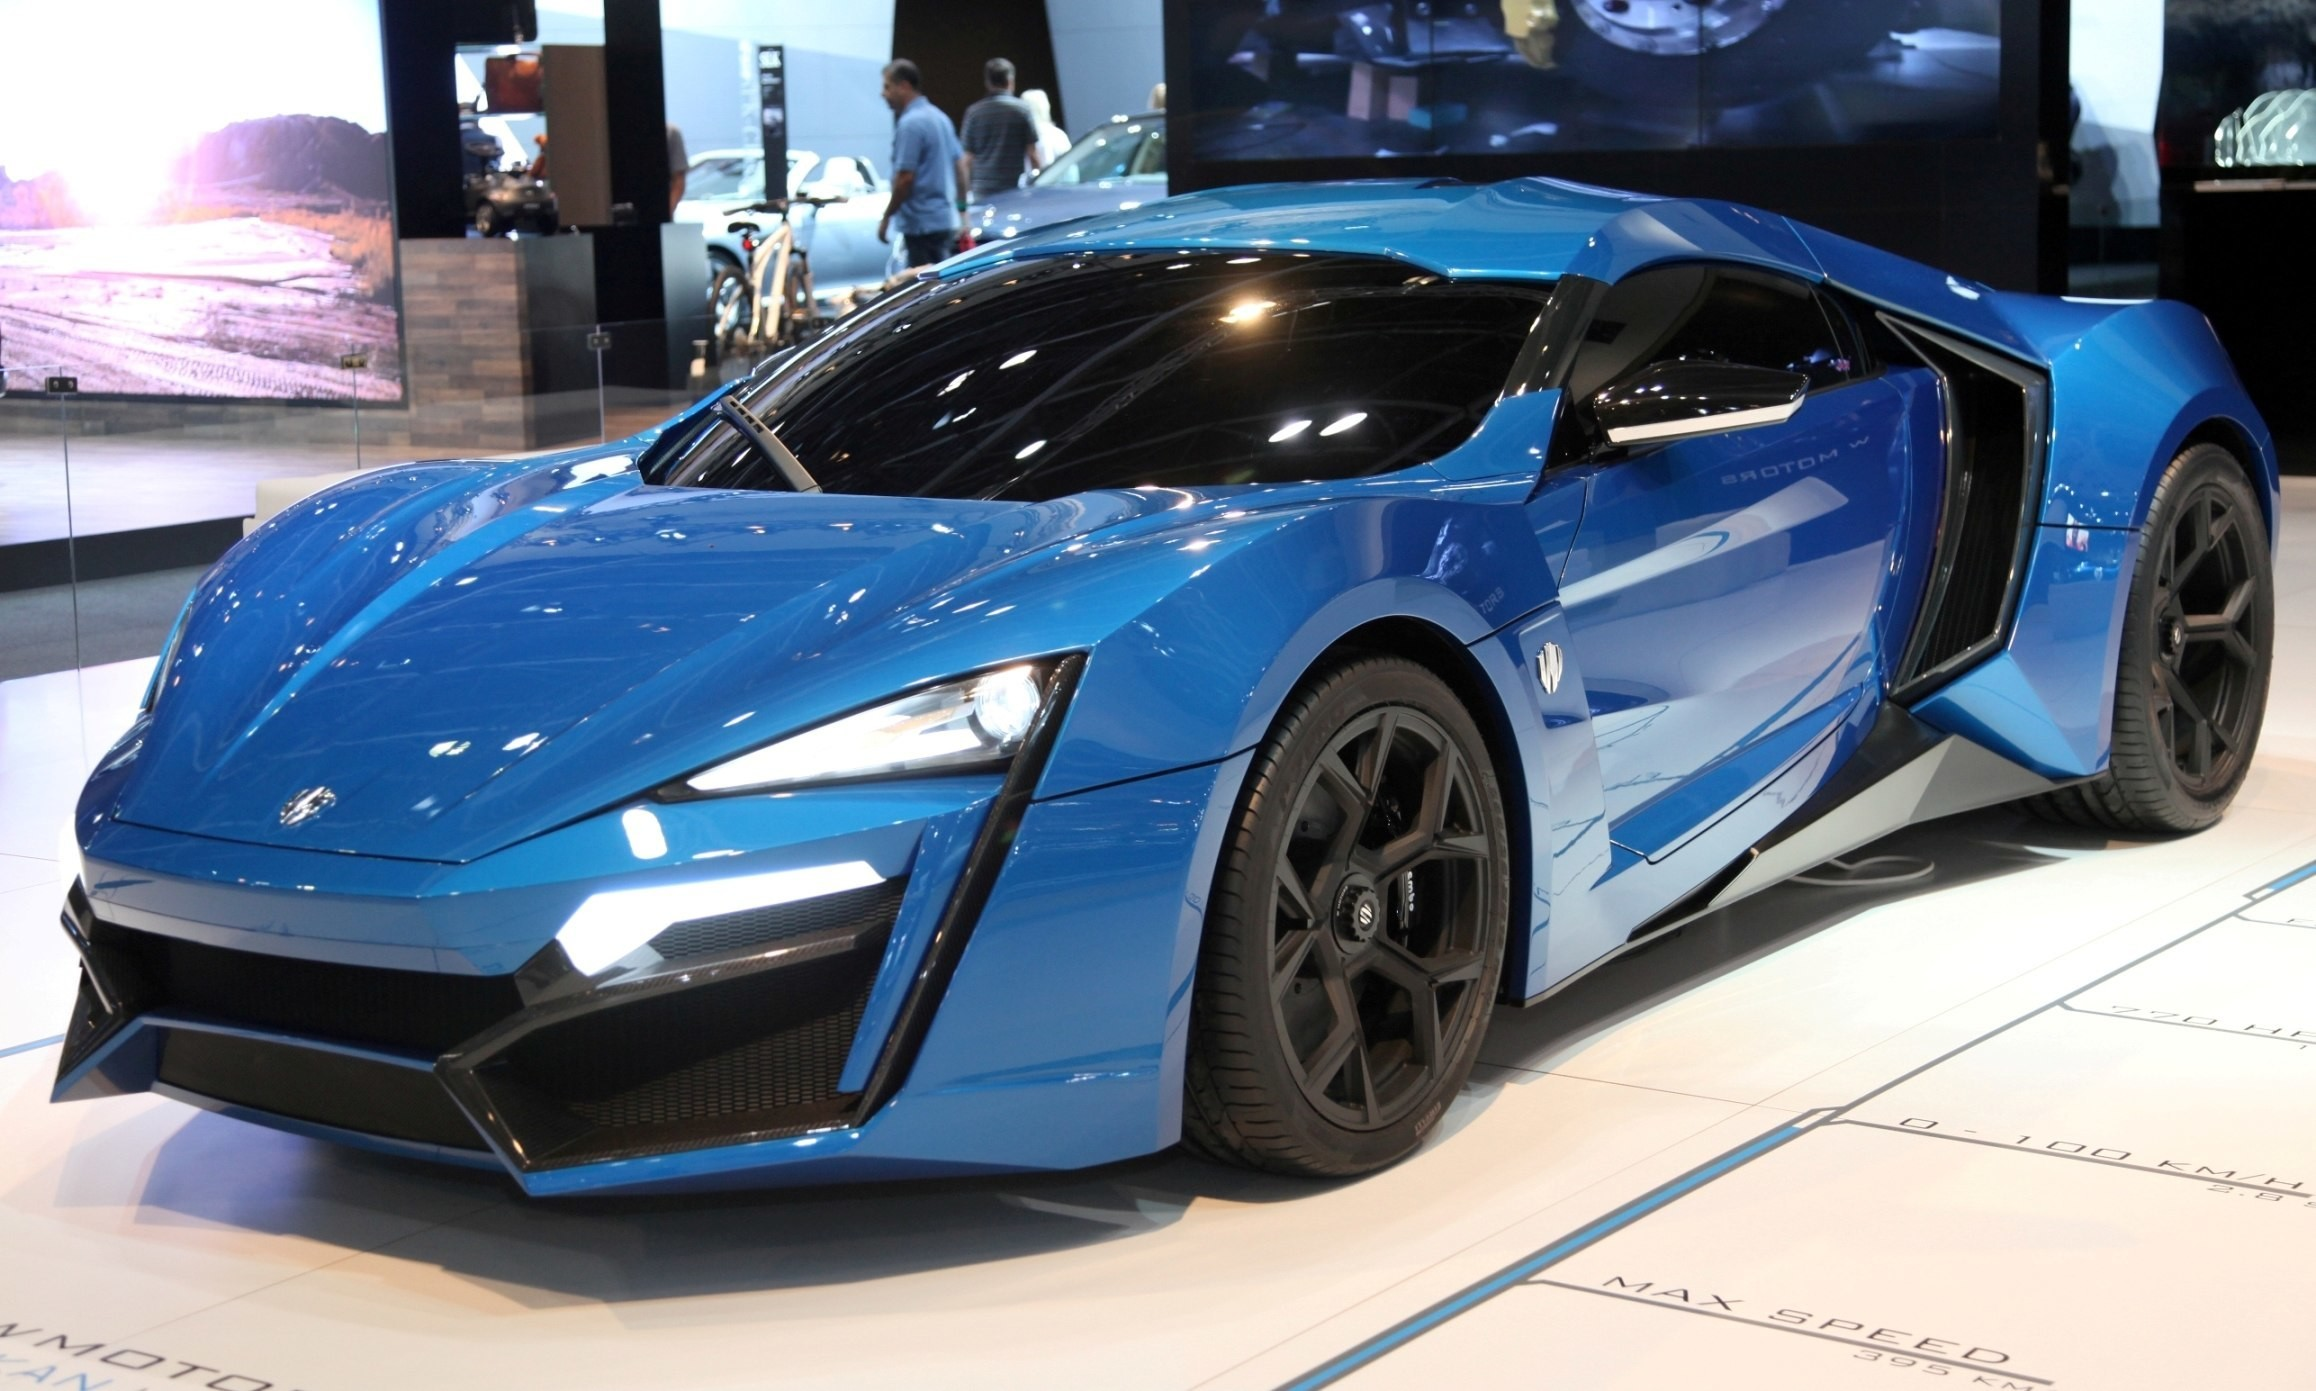 2316x1391 2014 W Motors Lykan Hypersport in 40+ Amazing New Wallpapers, Including  MegaLux Interior 40